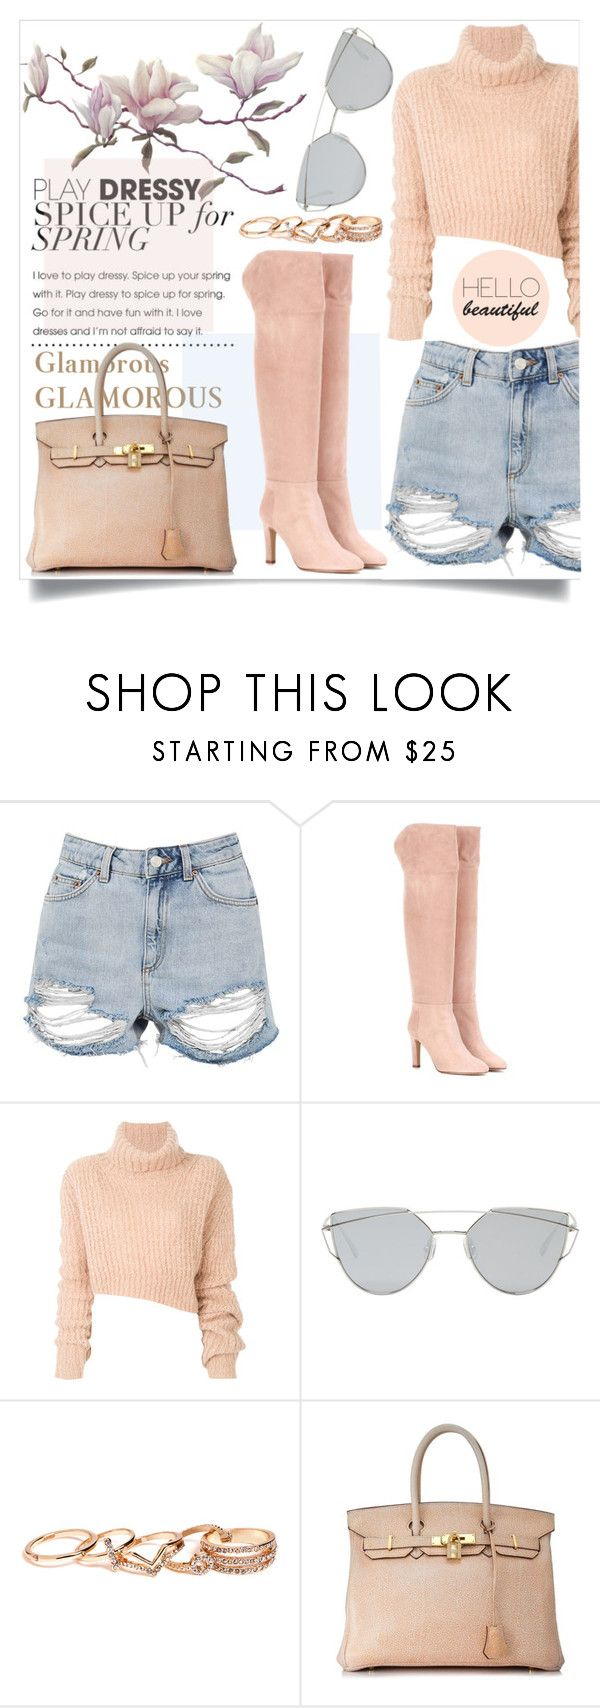 """S&S"" by semooon ❤ liked on Polyvore featuring Topshop, Gabriela Hearst, Ann Demeulemeester, Gentle Monster, GUESS and Hermès"